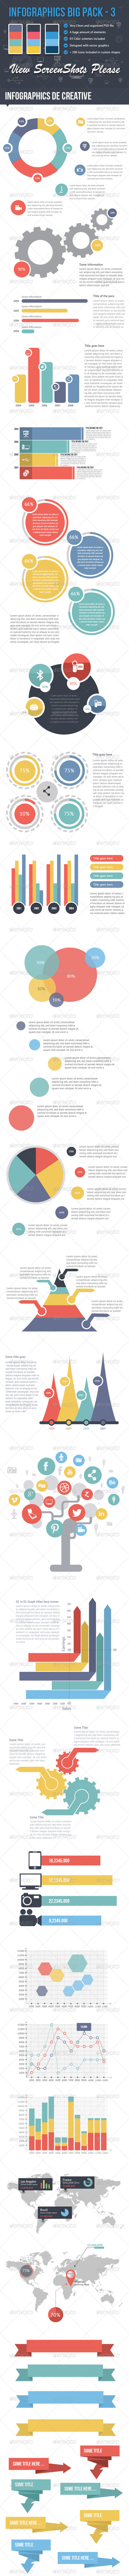 Infographic Big Pack - 3 - Infographics